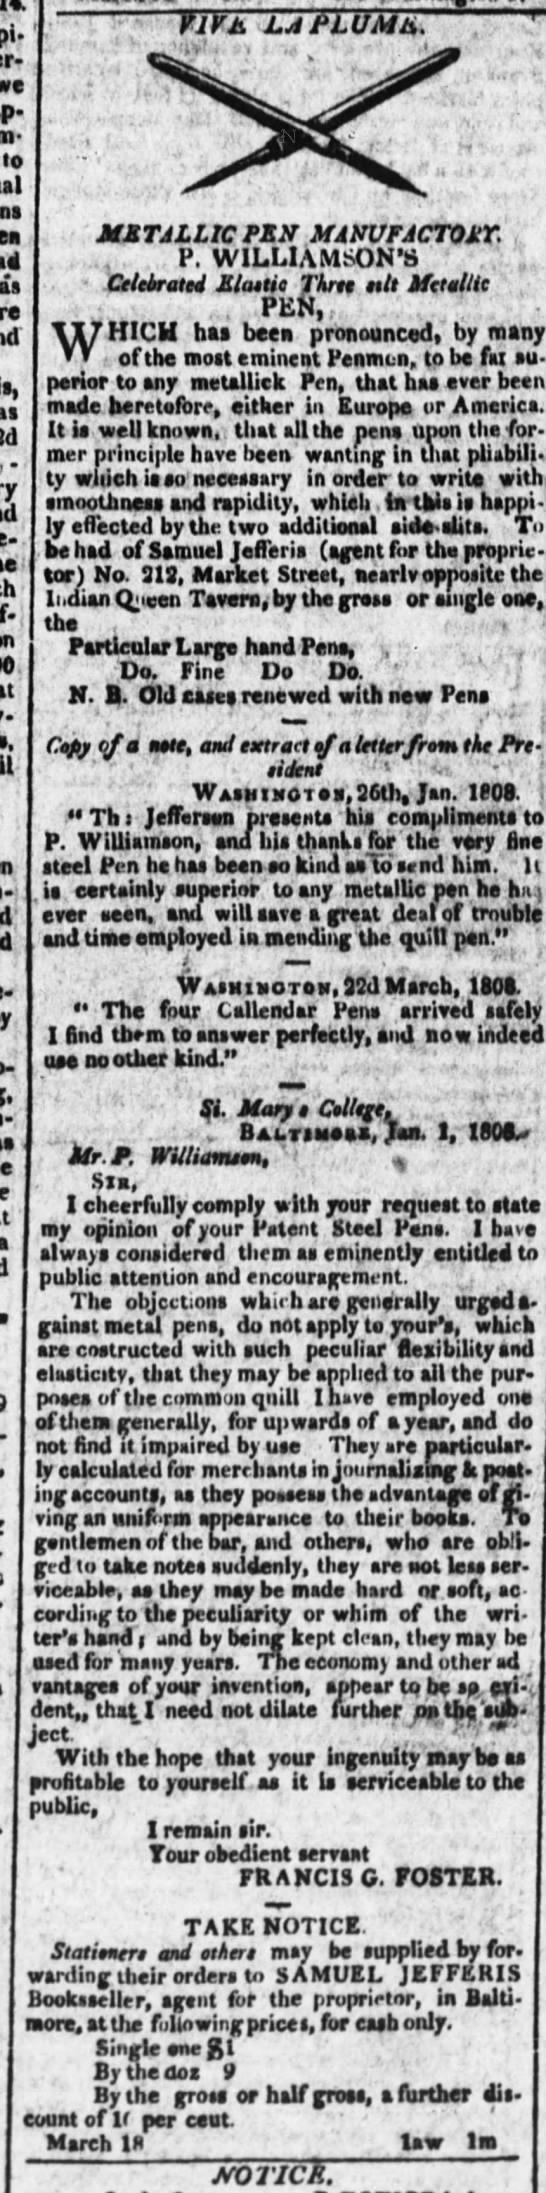 1809 Williamson ad with Jefferson